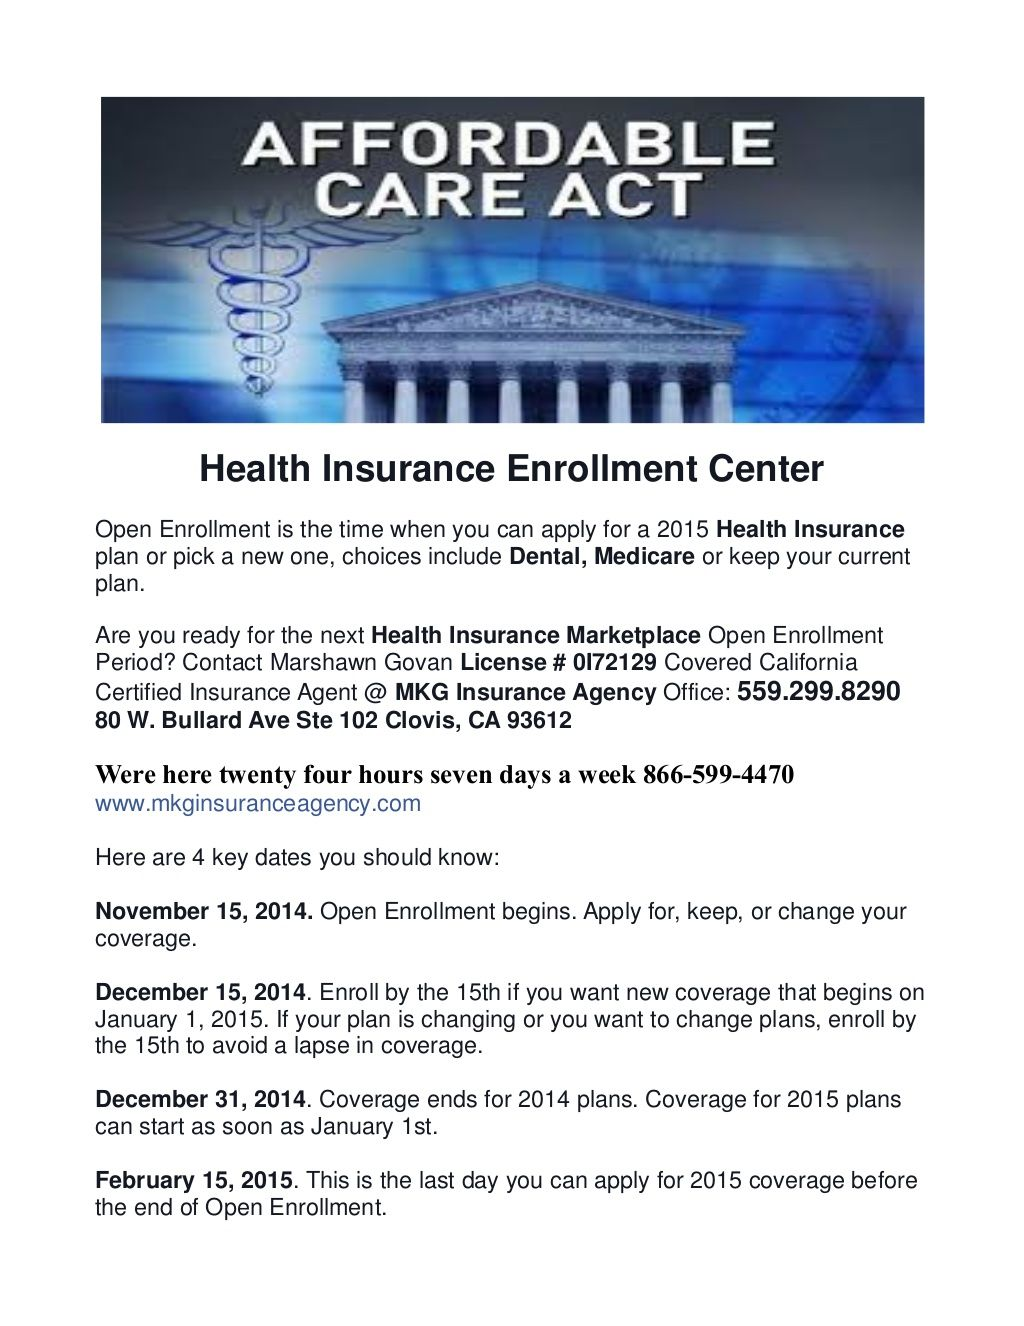 Affordable care act health insurance enrollment center by mkg affordable care act health insurance enrollment center by mkg insurance agency via slideshare 1betcityfo Image collections